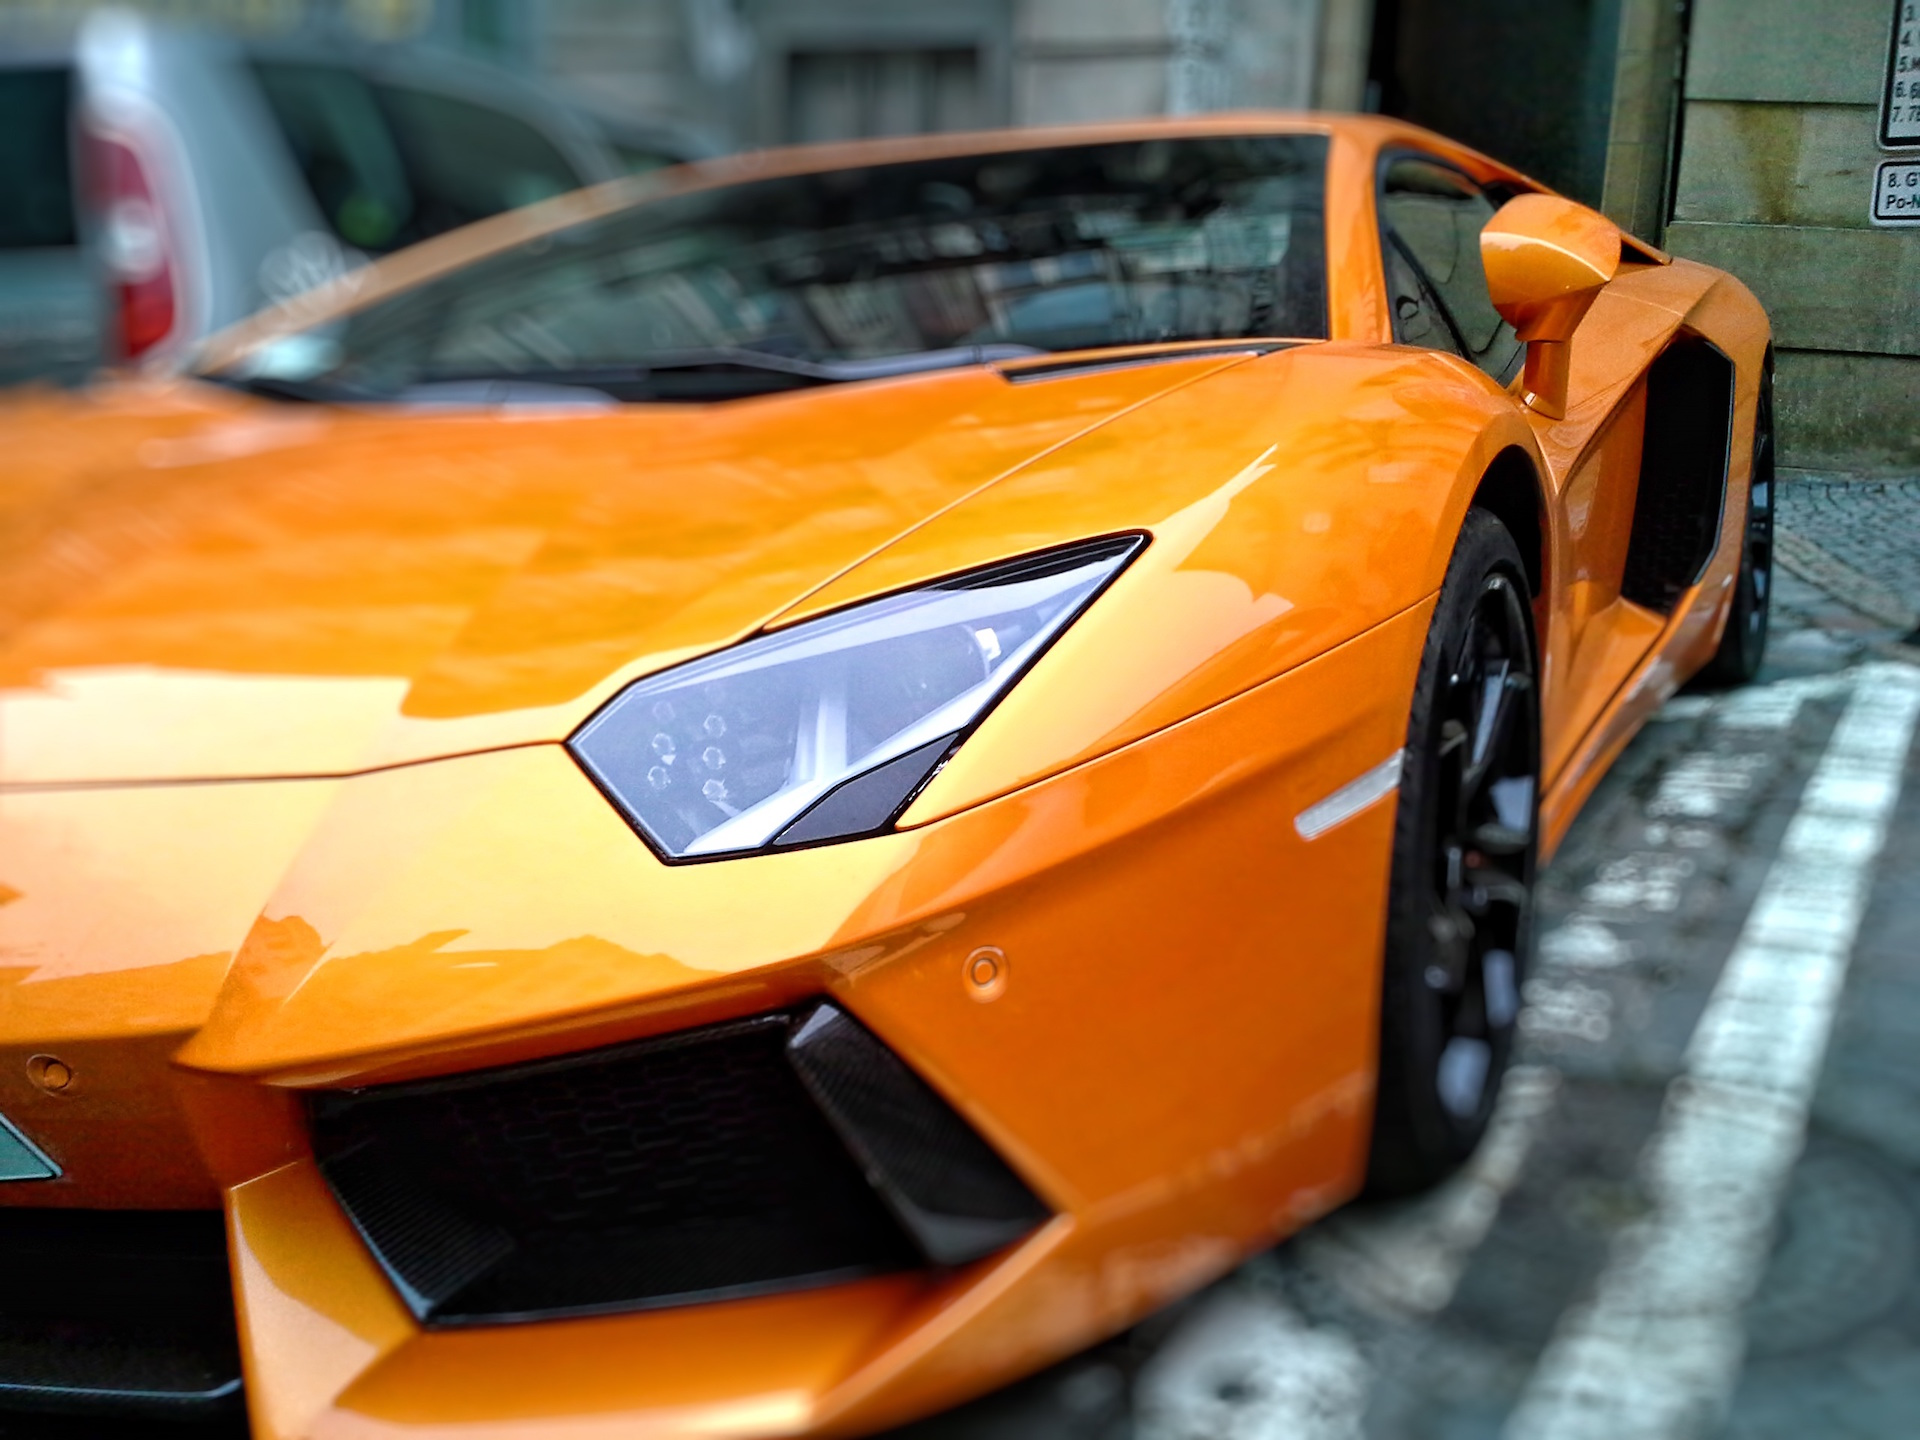 Auto, Lamborghini, Luxus, Sport, Orange - Wallpaper HD - Prof.-falken.com